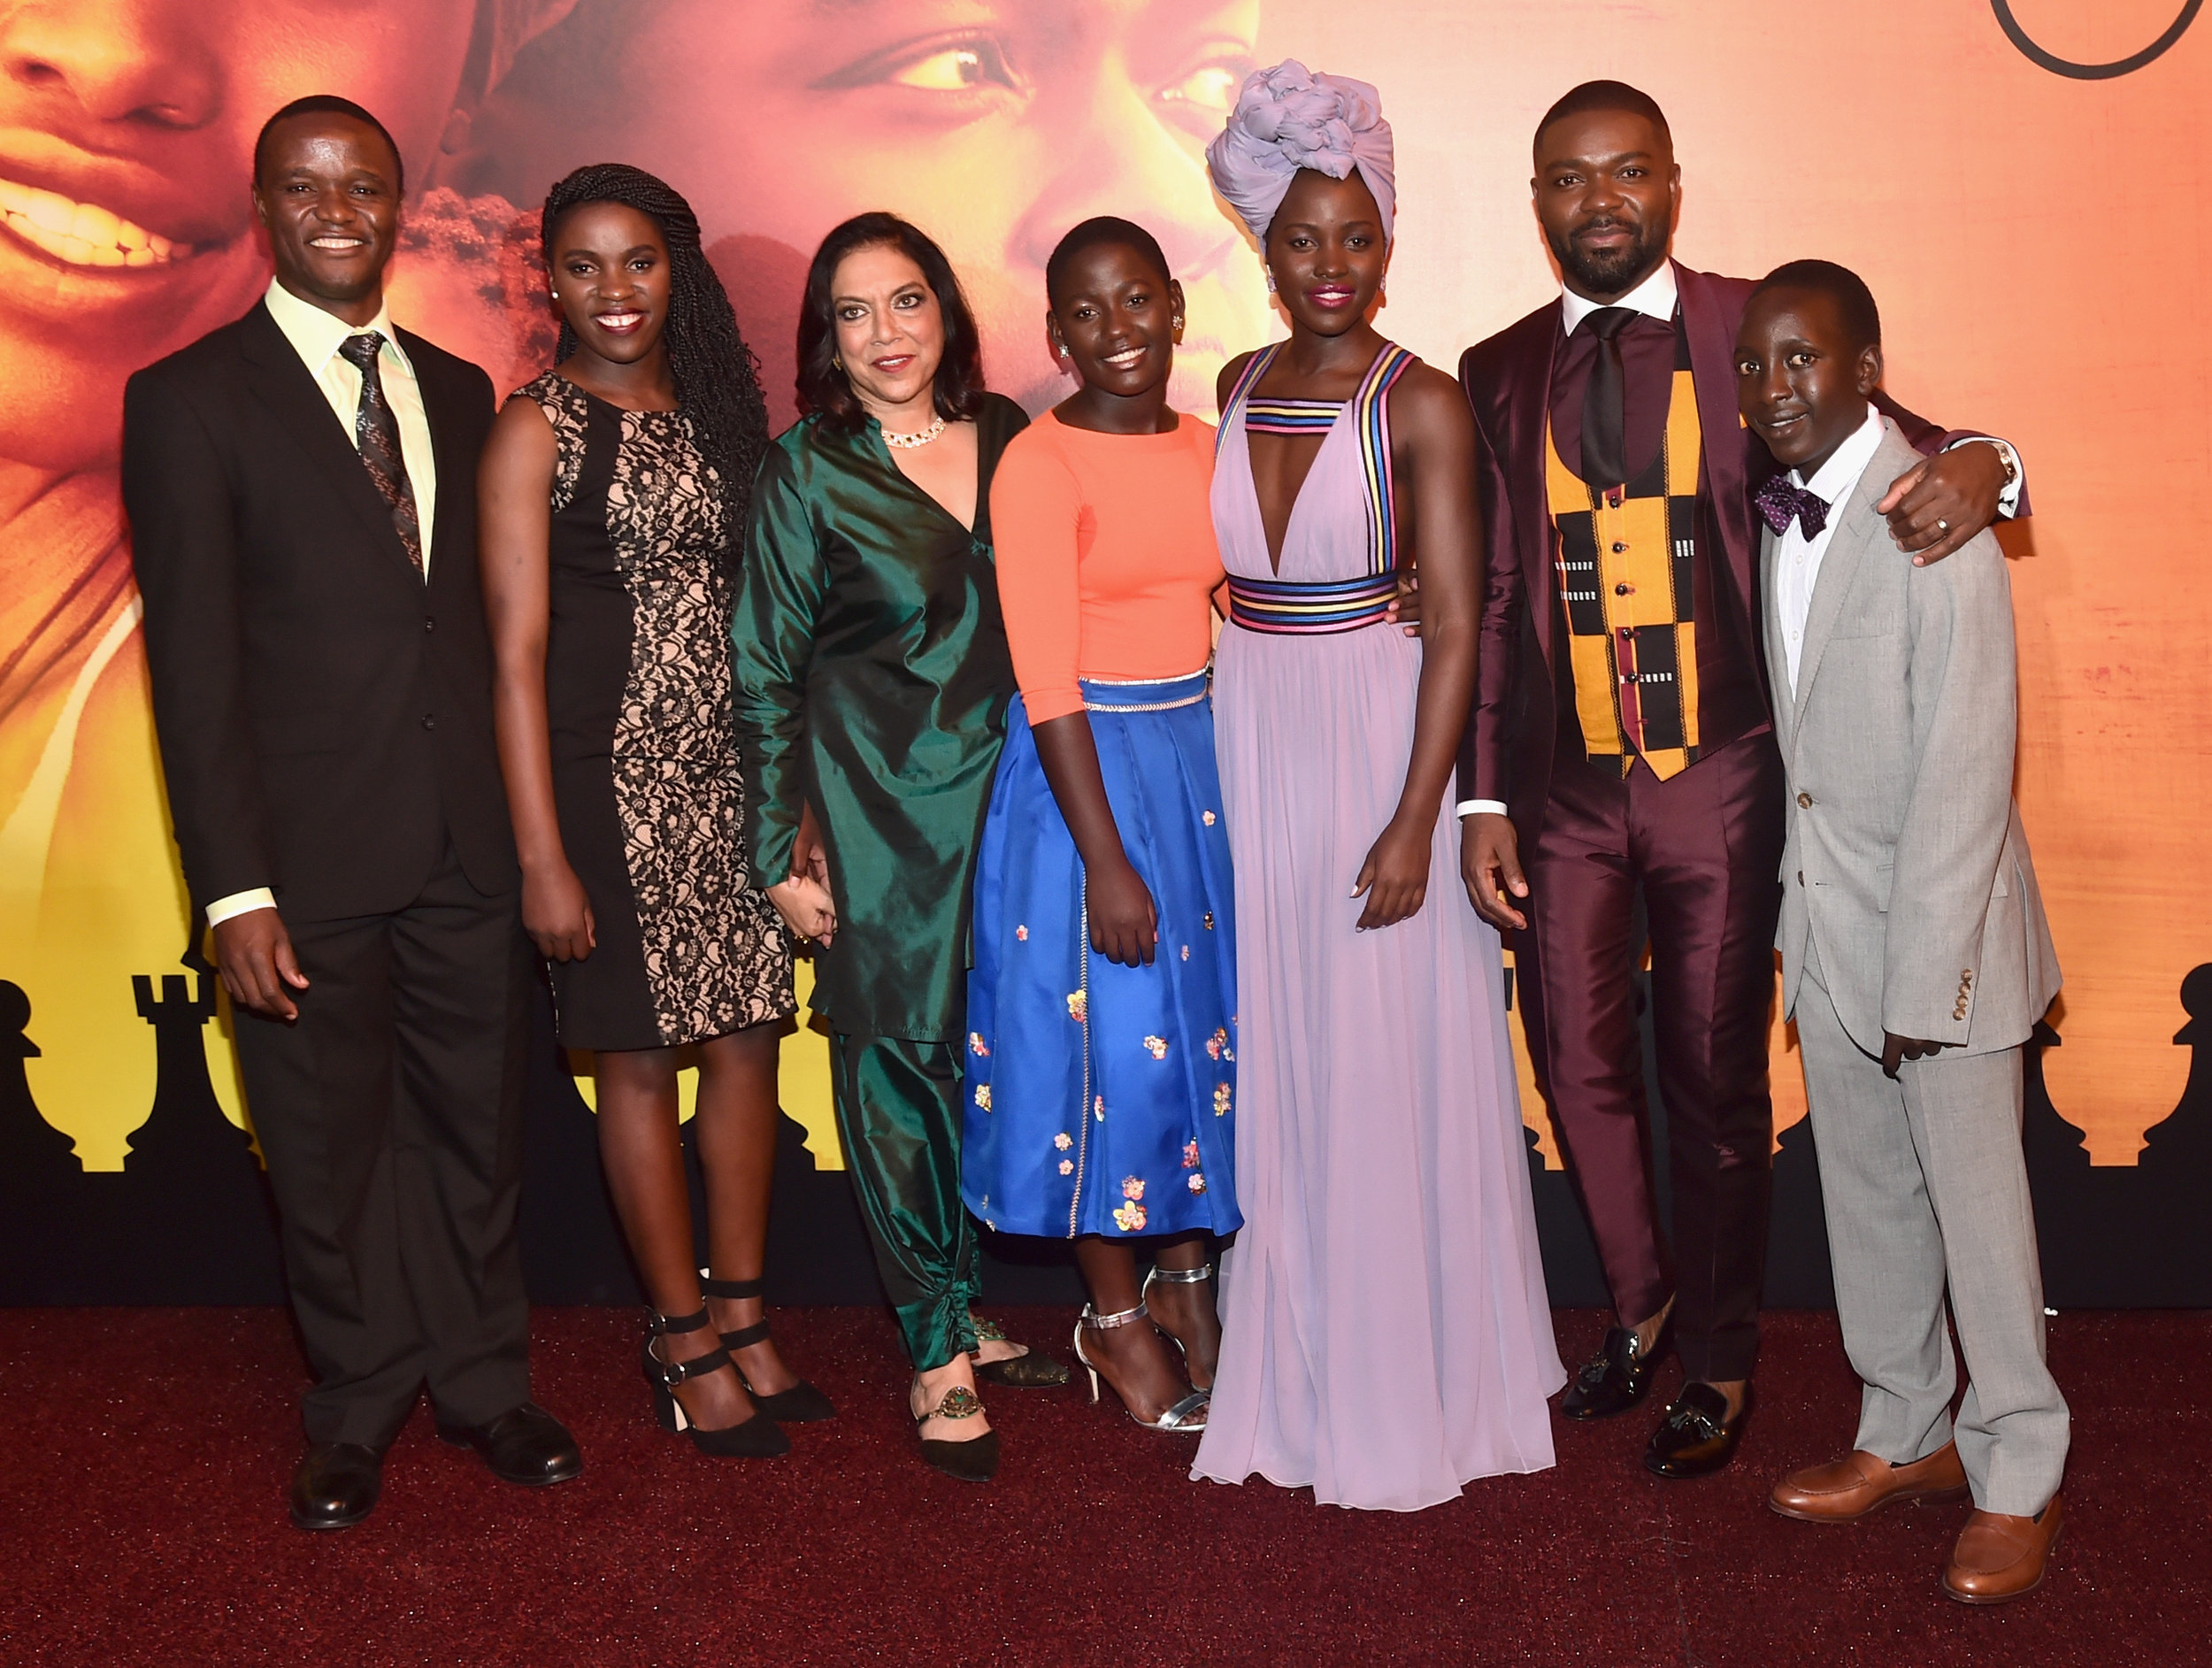 (Photo by Alberto E. Rodriguez/Getty Images for Disney) *** Local Caption *** Robert Katende; Phiona Mutesi; Mira Nair; Madina Nalwanga; Lupita Nyong'o; David Oyelowo; Martin Kabanza